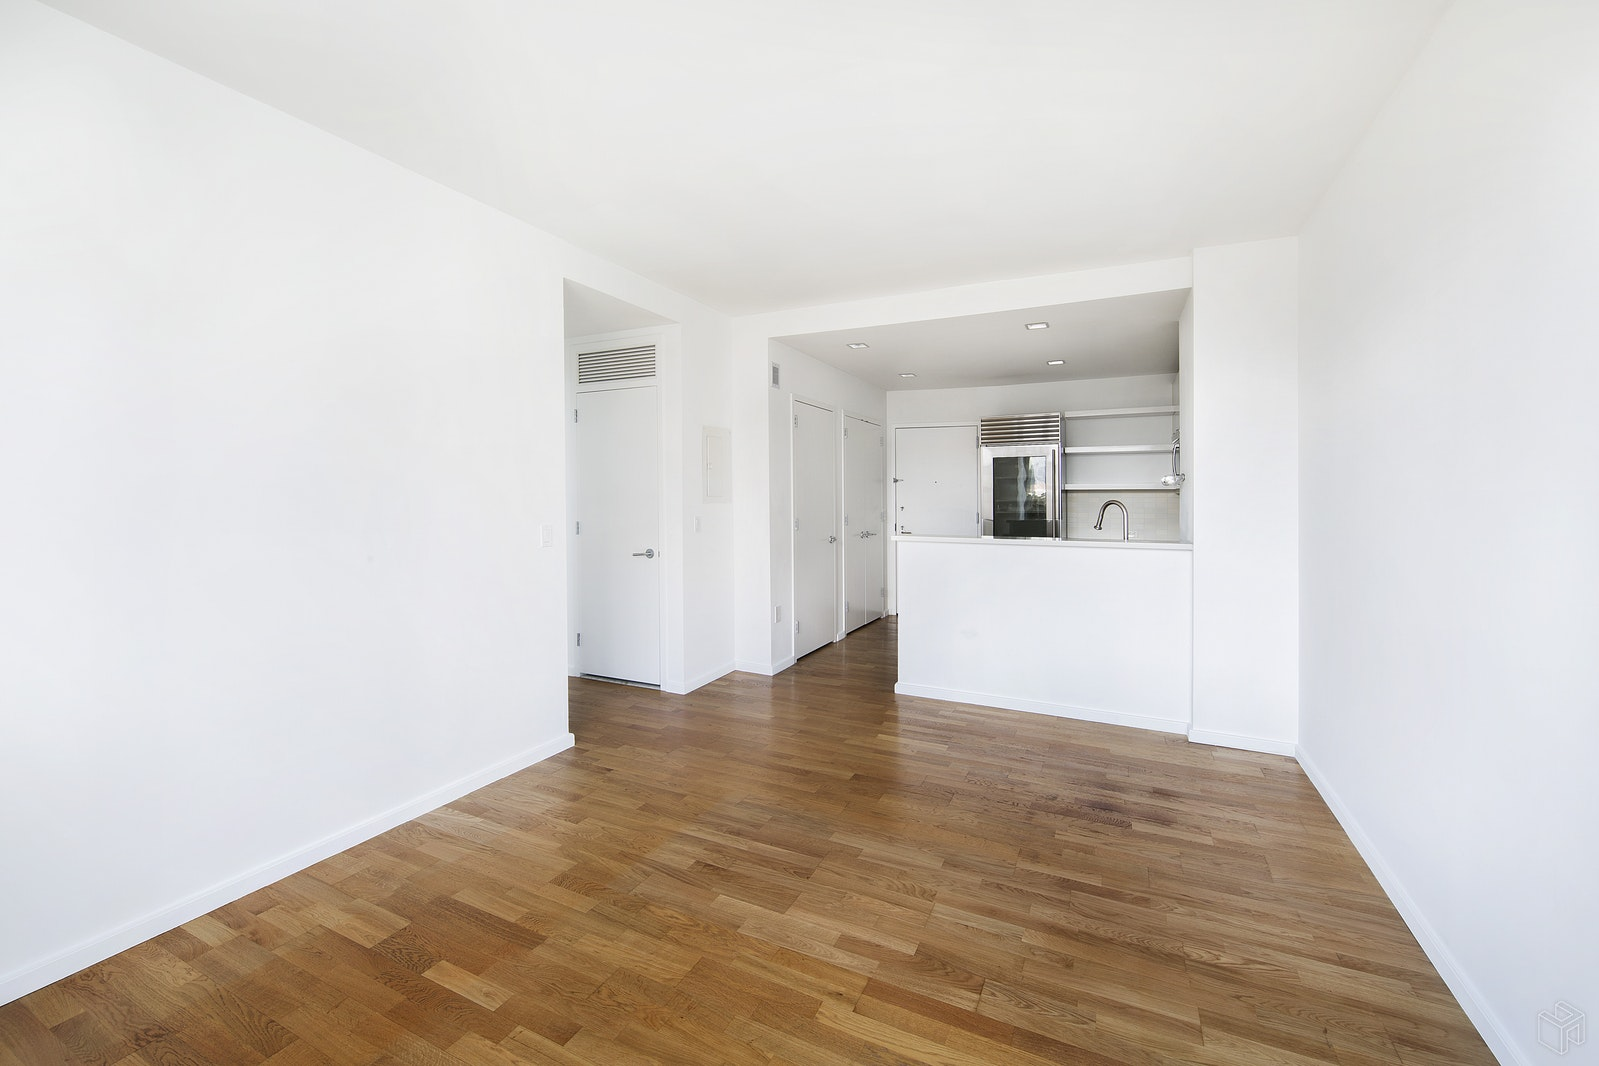 635 WEST 42ND STREET 6B, Midtown West, $840,000, Web #: 1508015